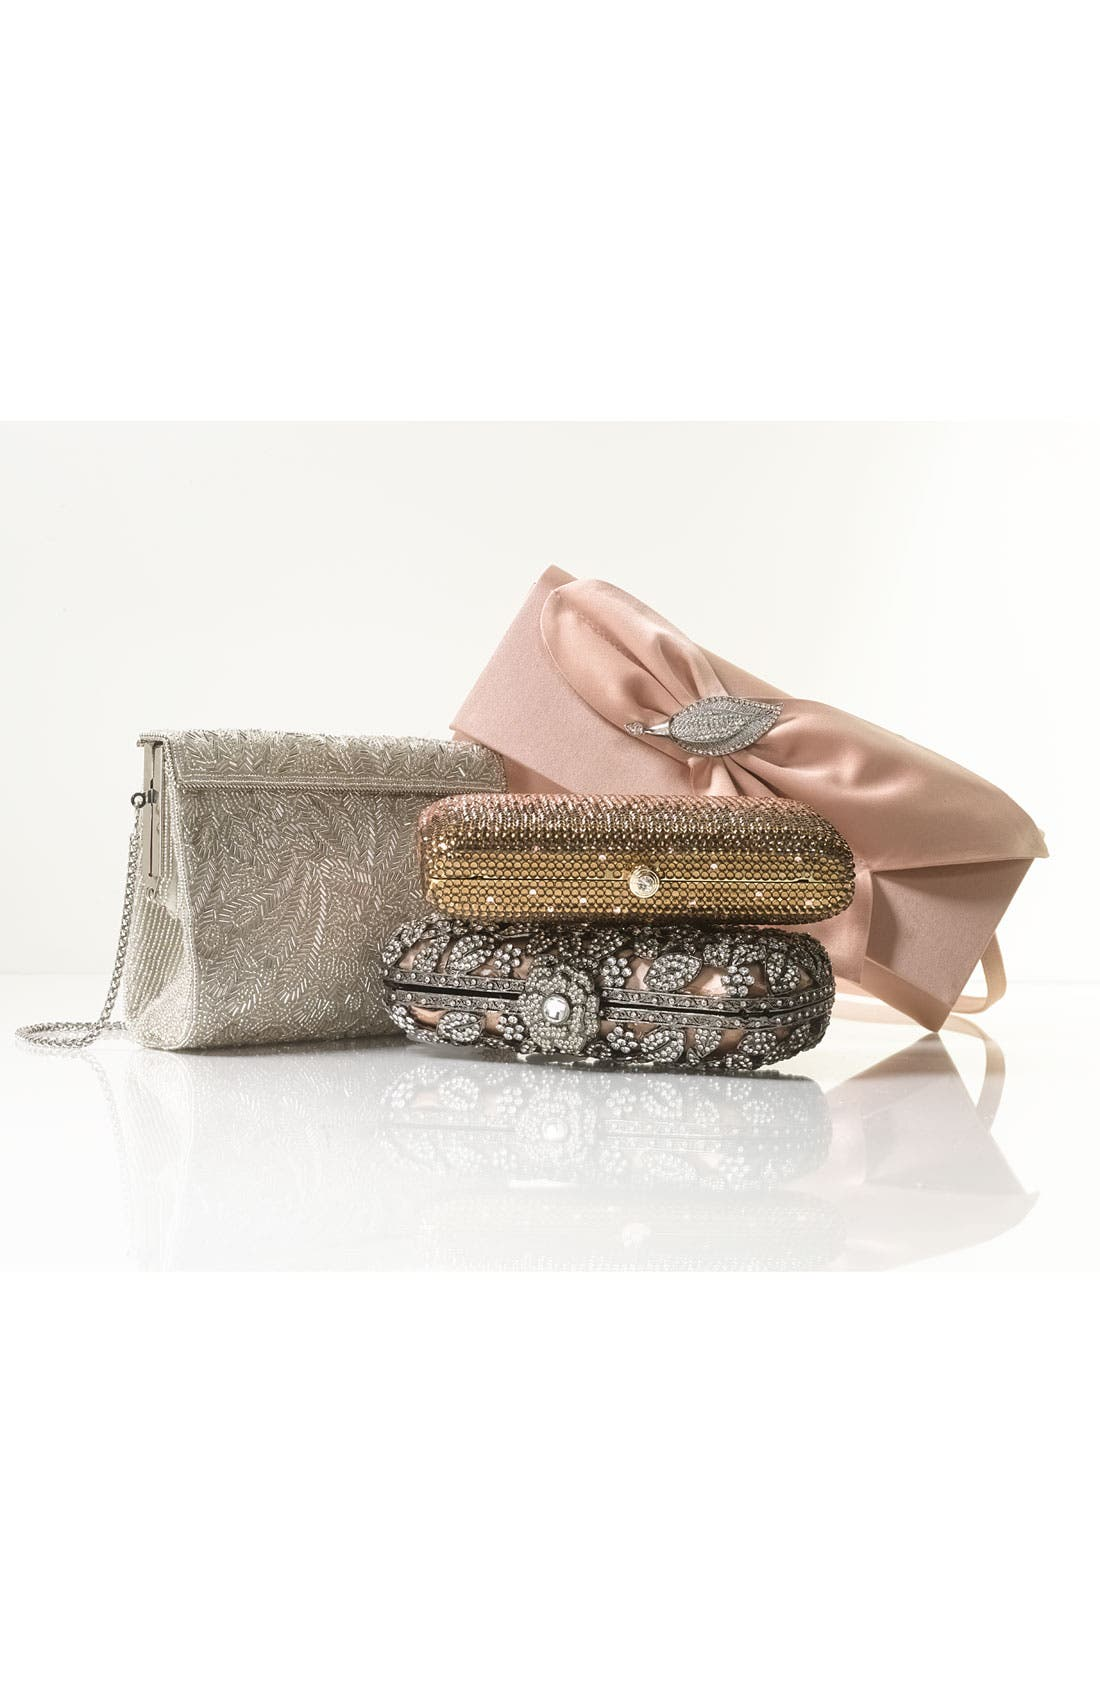 'Meadow' Beaded Frame Clutch,                             Alternate thumbnail 7, color,                             472